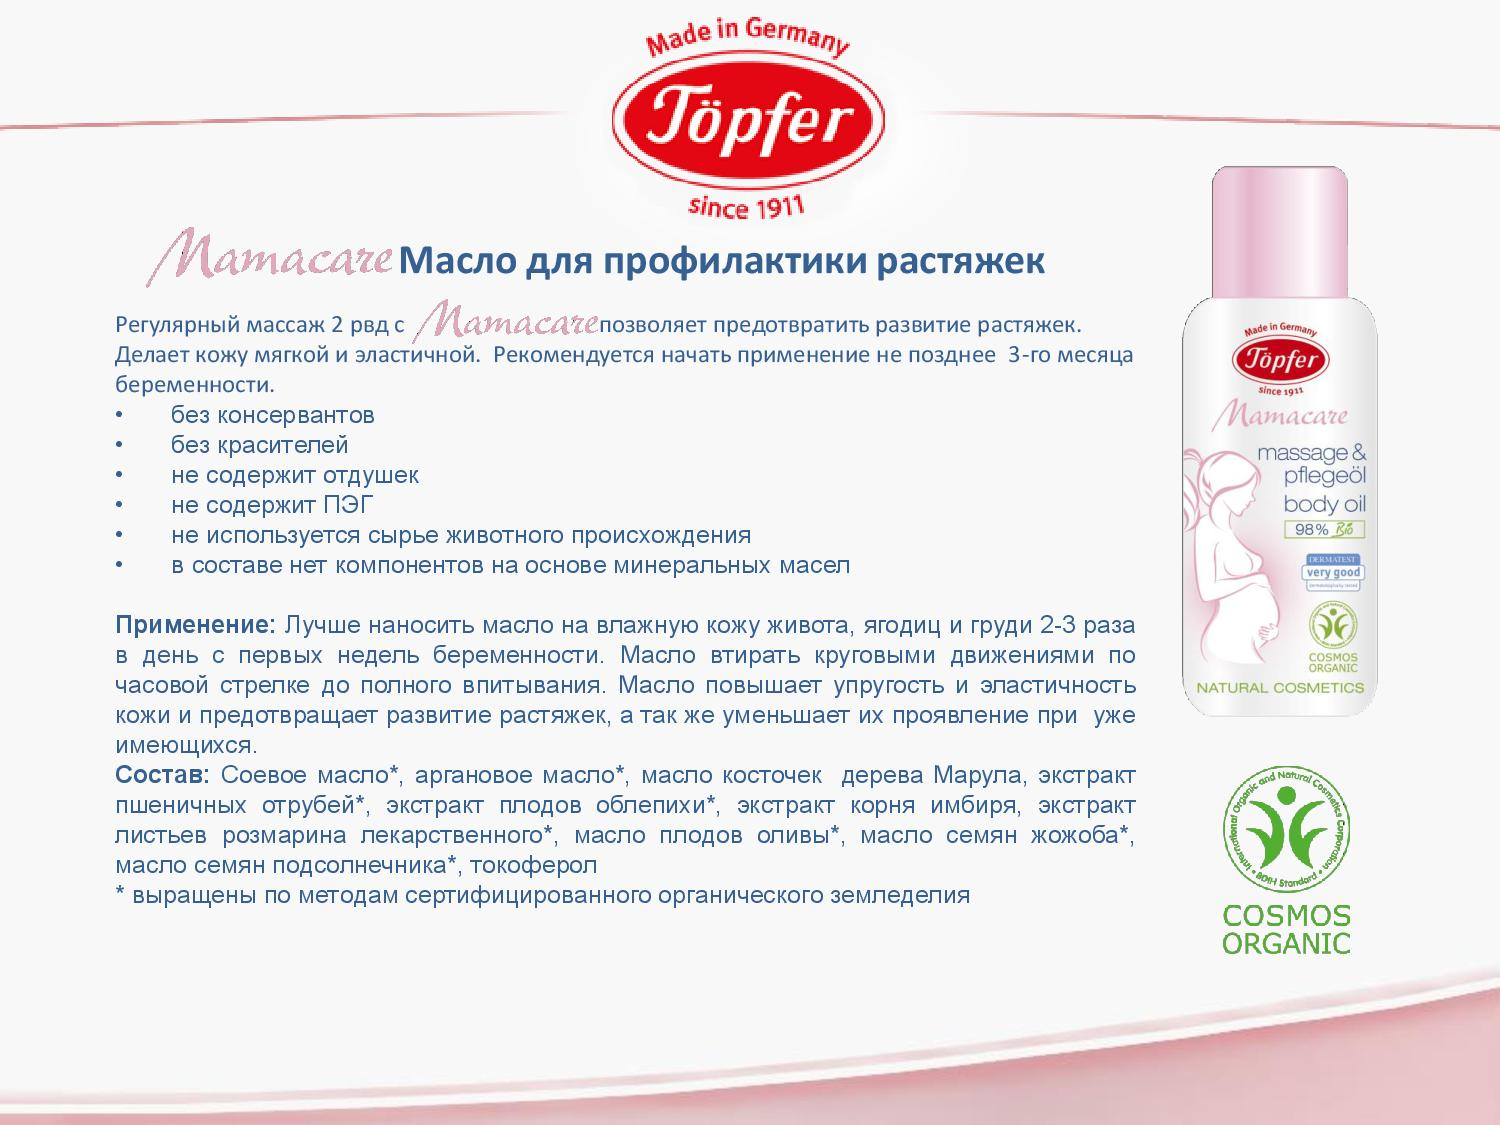 topfer-mamacare-2014-page-003.jpg